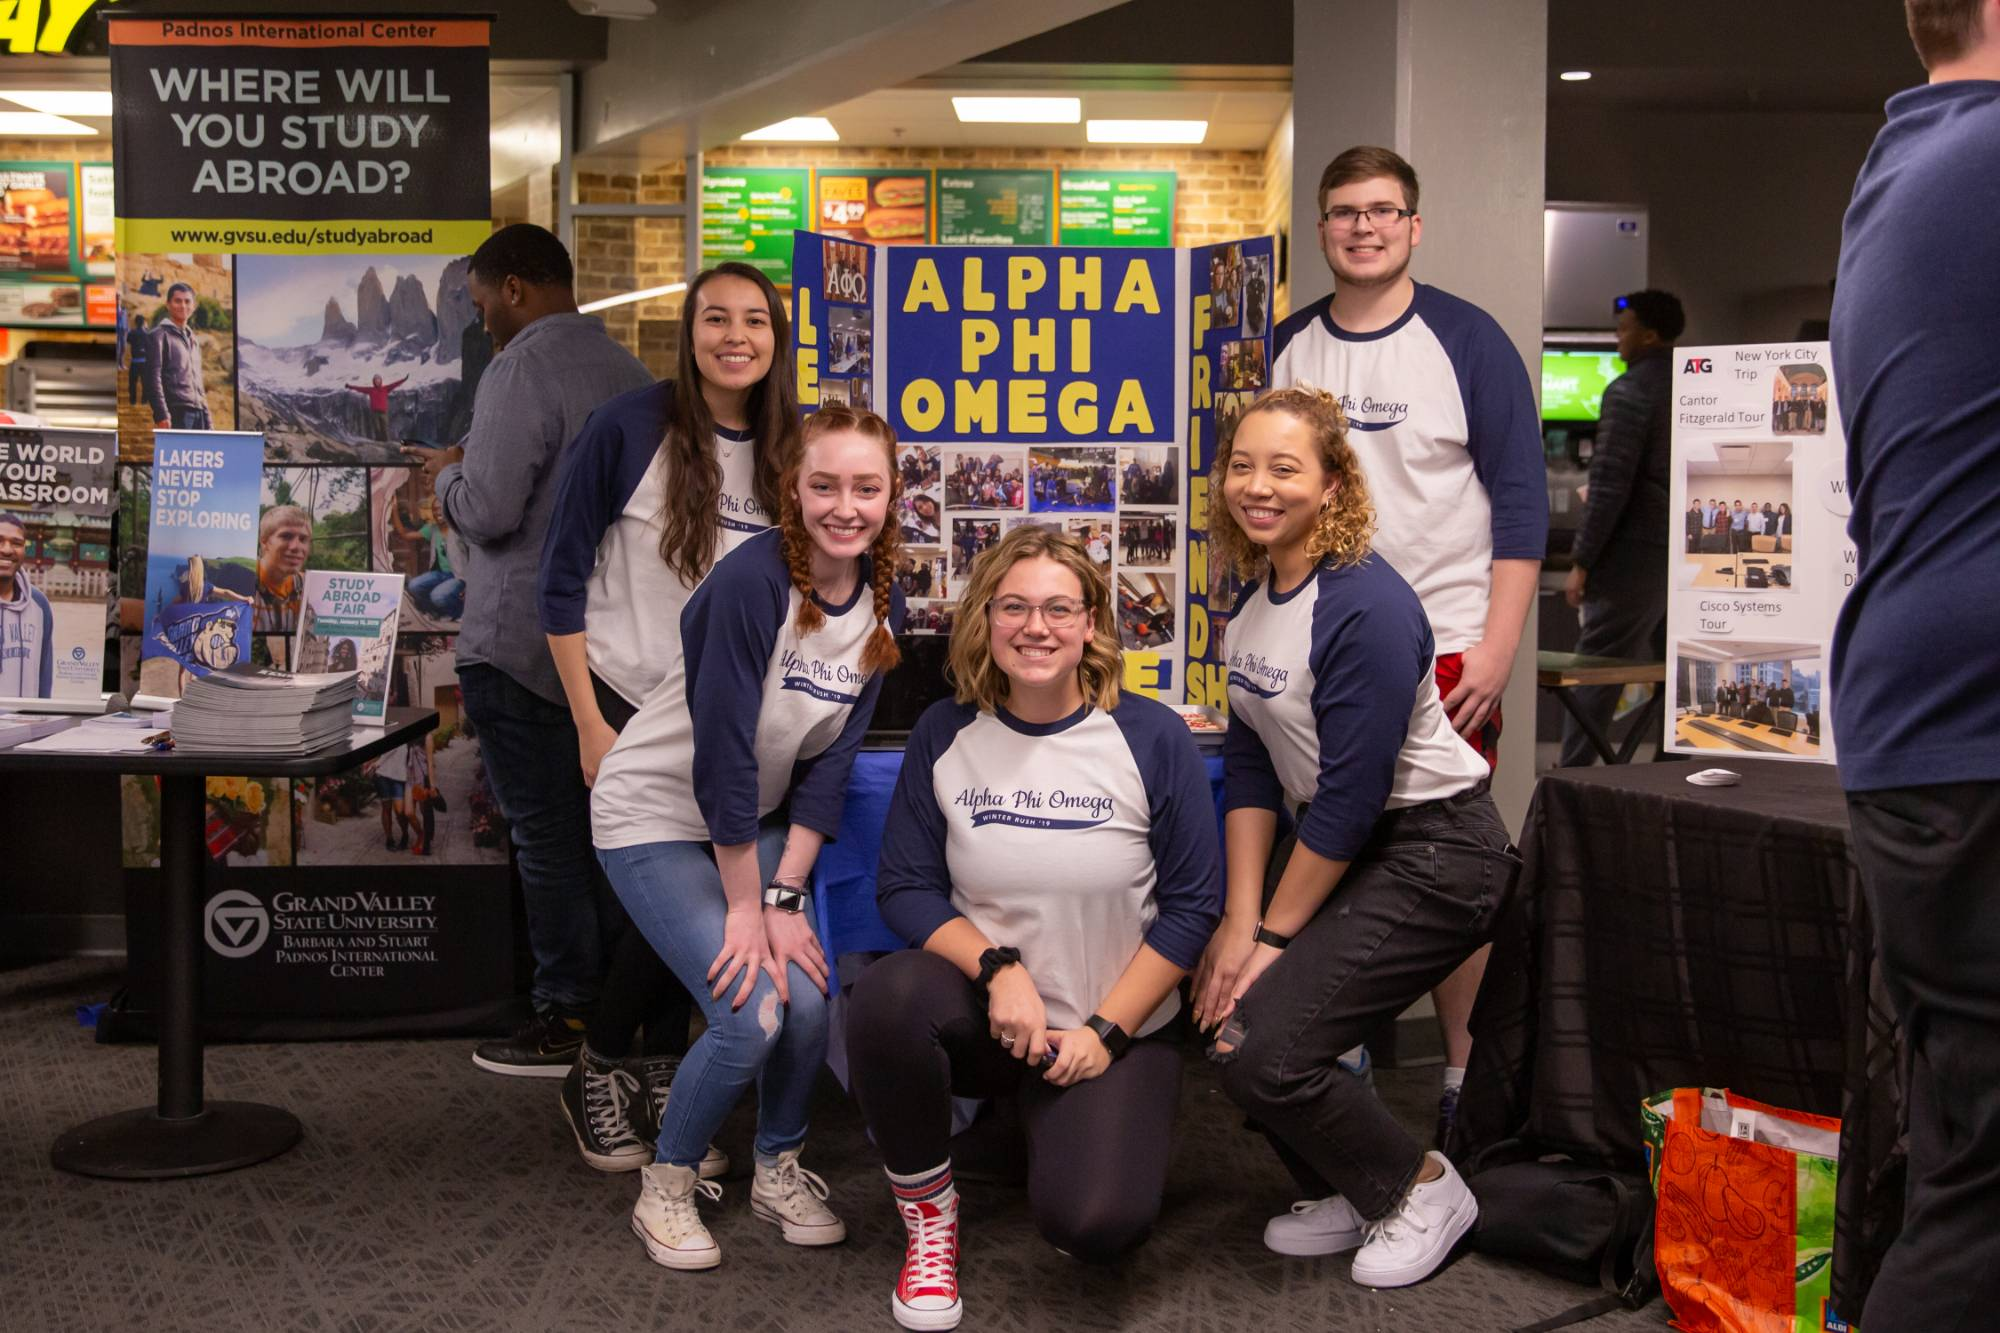 The Alpha Phi Omega booth at Campus Life Night.